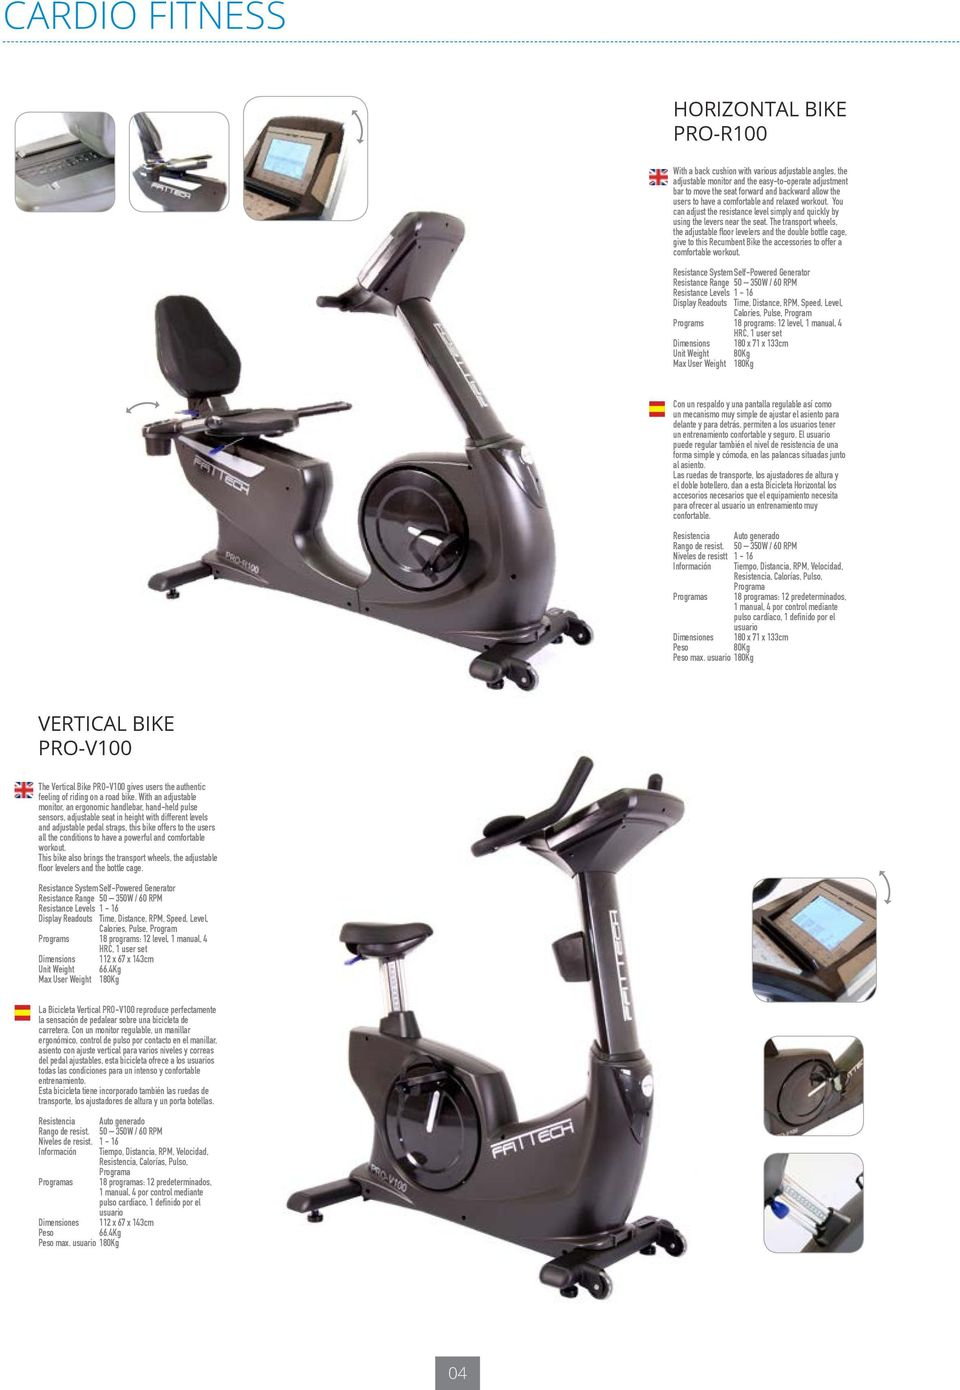 The transport wheels, the adjustable floor levelers and the double bottle cage, give to this Recumbent Bike the accessories to offer a comfortable workout.